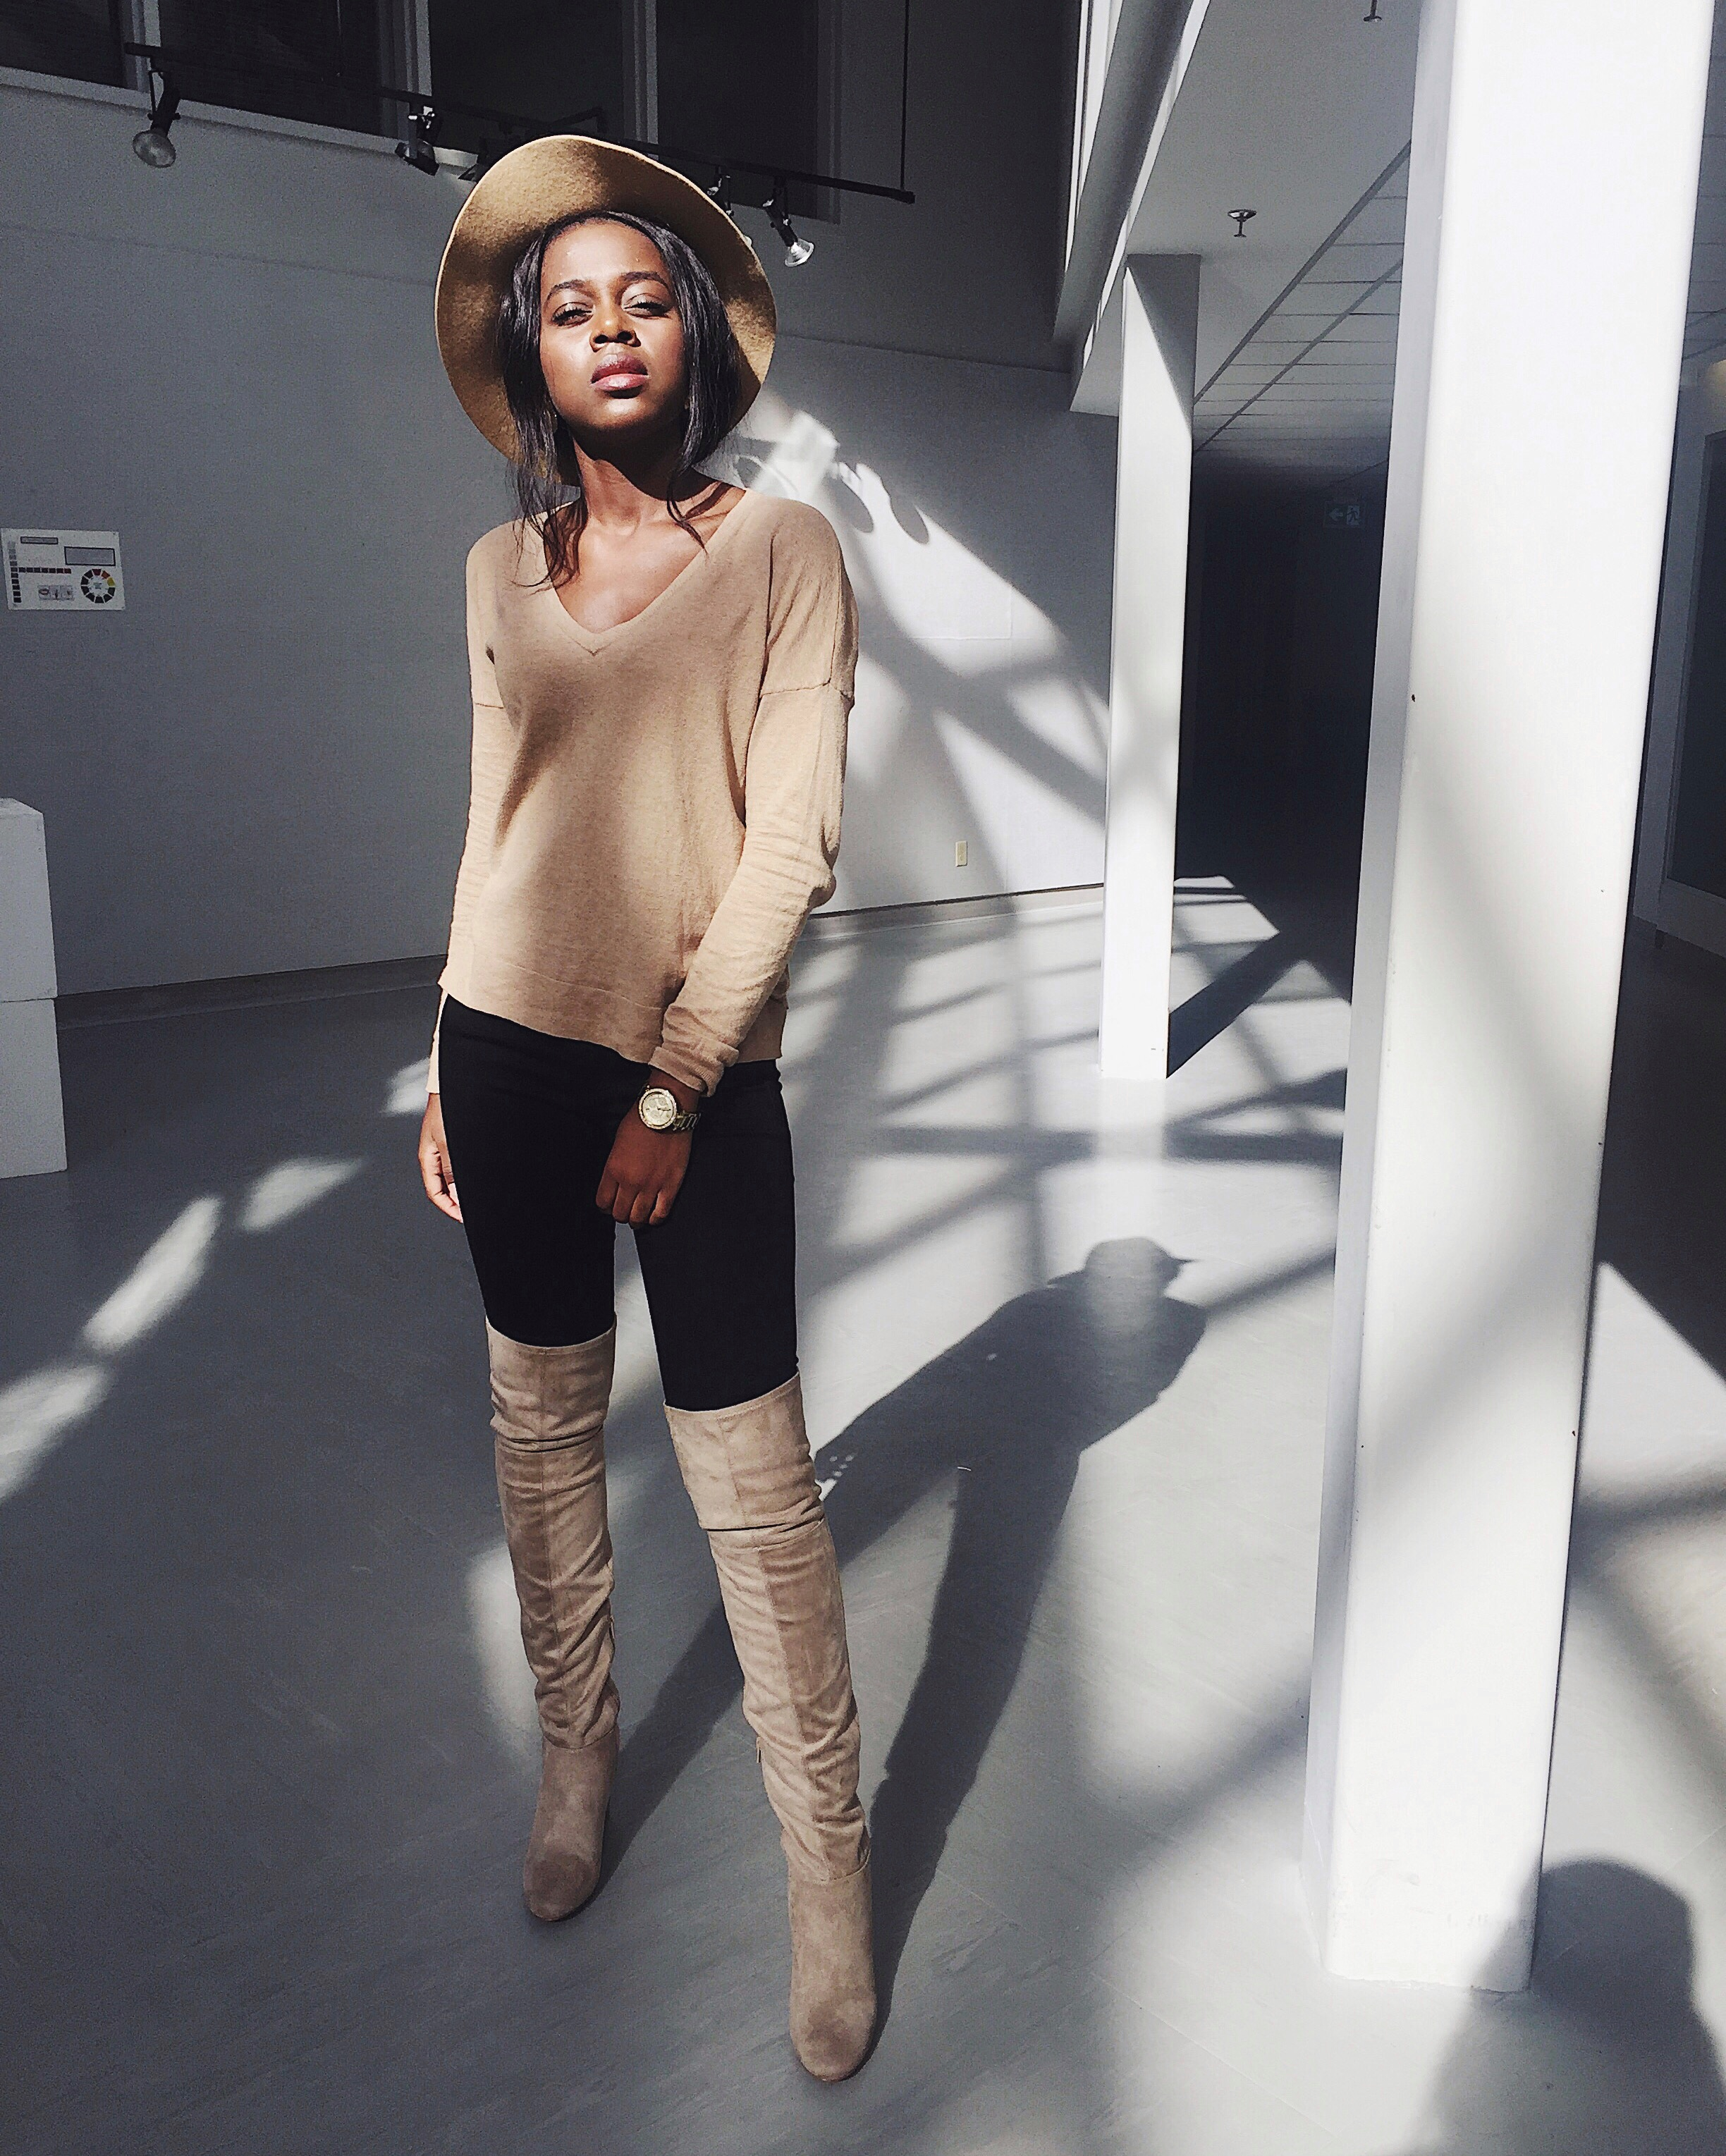 H&M black jeans, Camel Gap long sleeve top, Gold Michael Kors watch, camel thigh high boots H&M, camel fedora hat Call it Spring